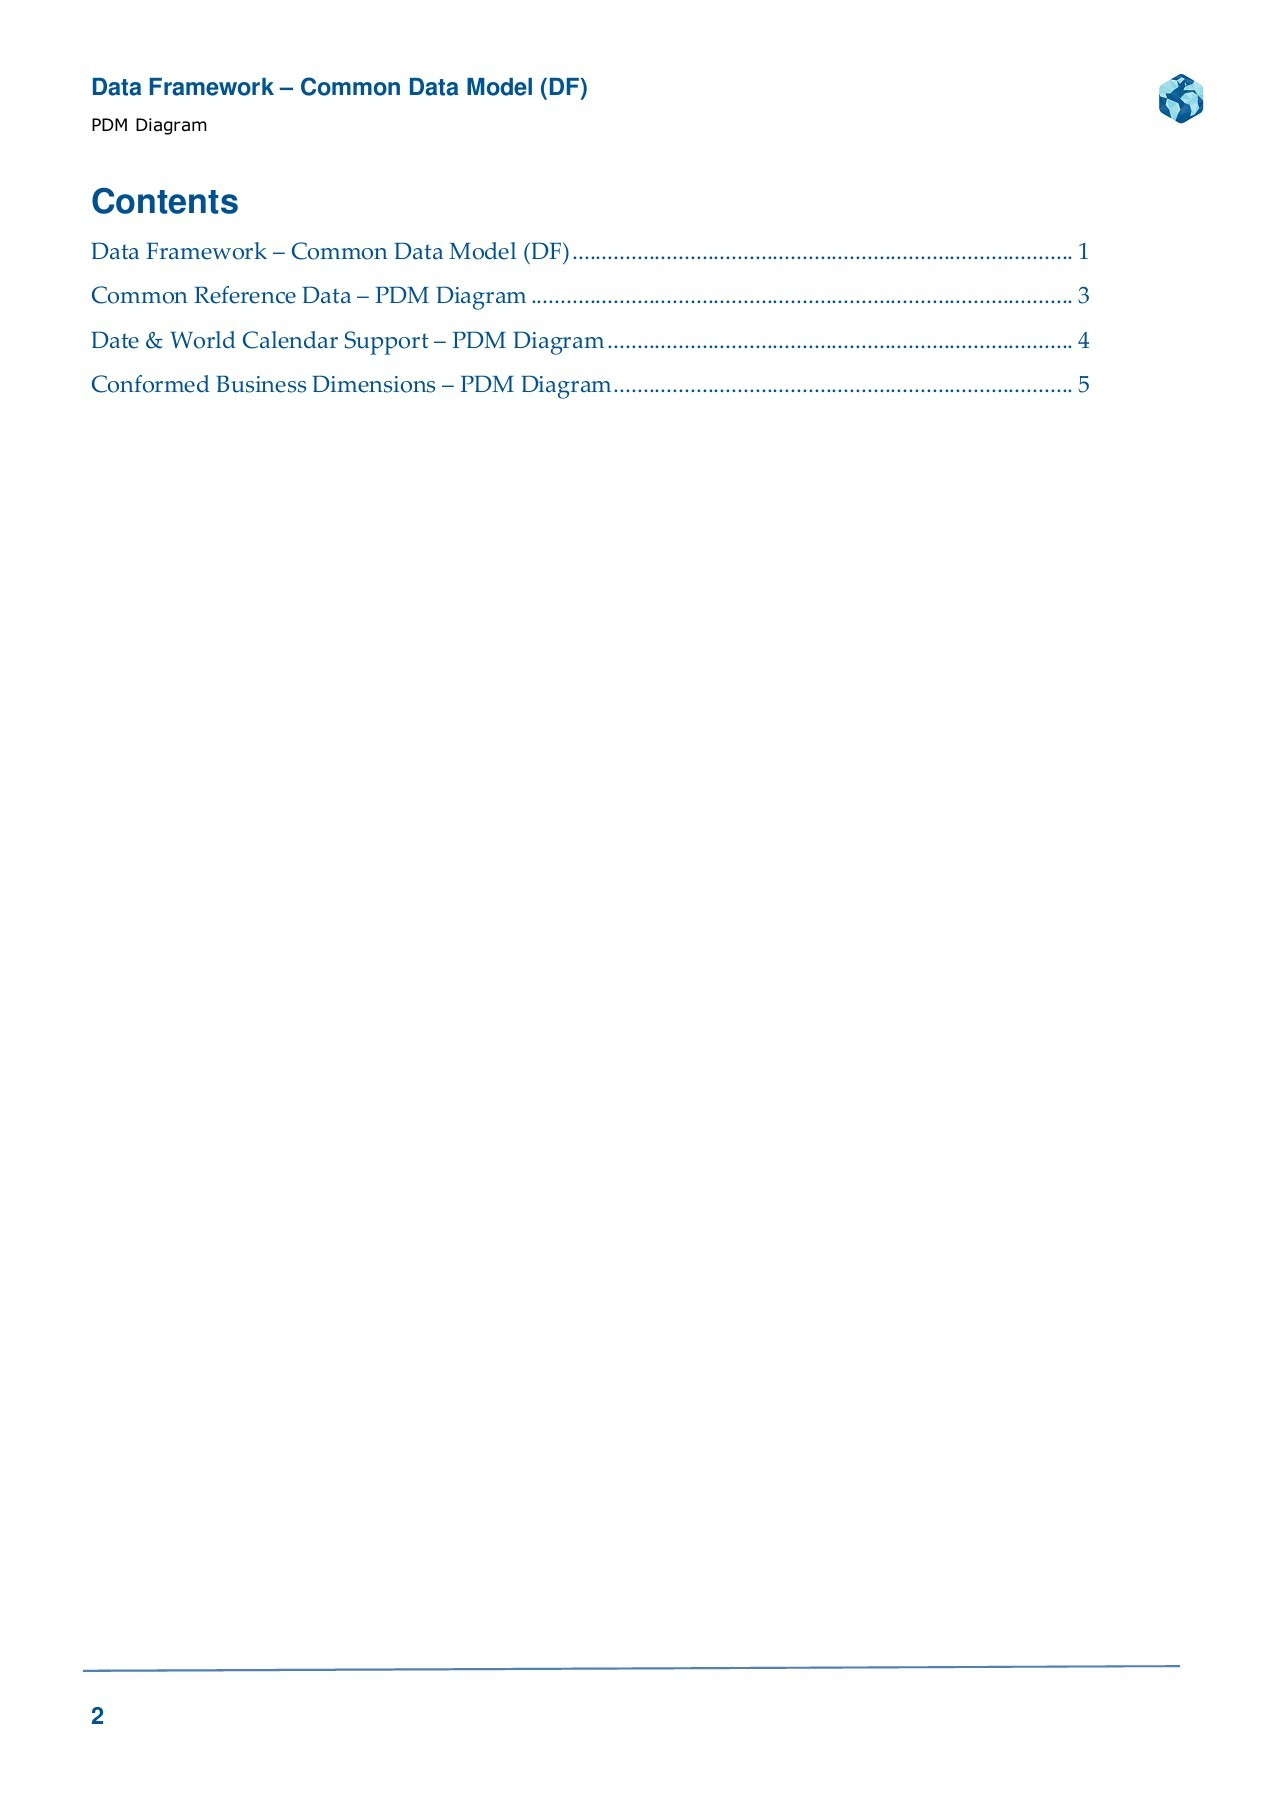 hight resolution of data framework common data model df pdm diagram v1 1 2017 05 22 pages 1 5 text version pubhtml5